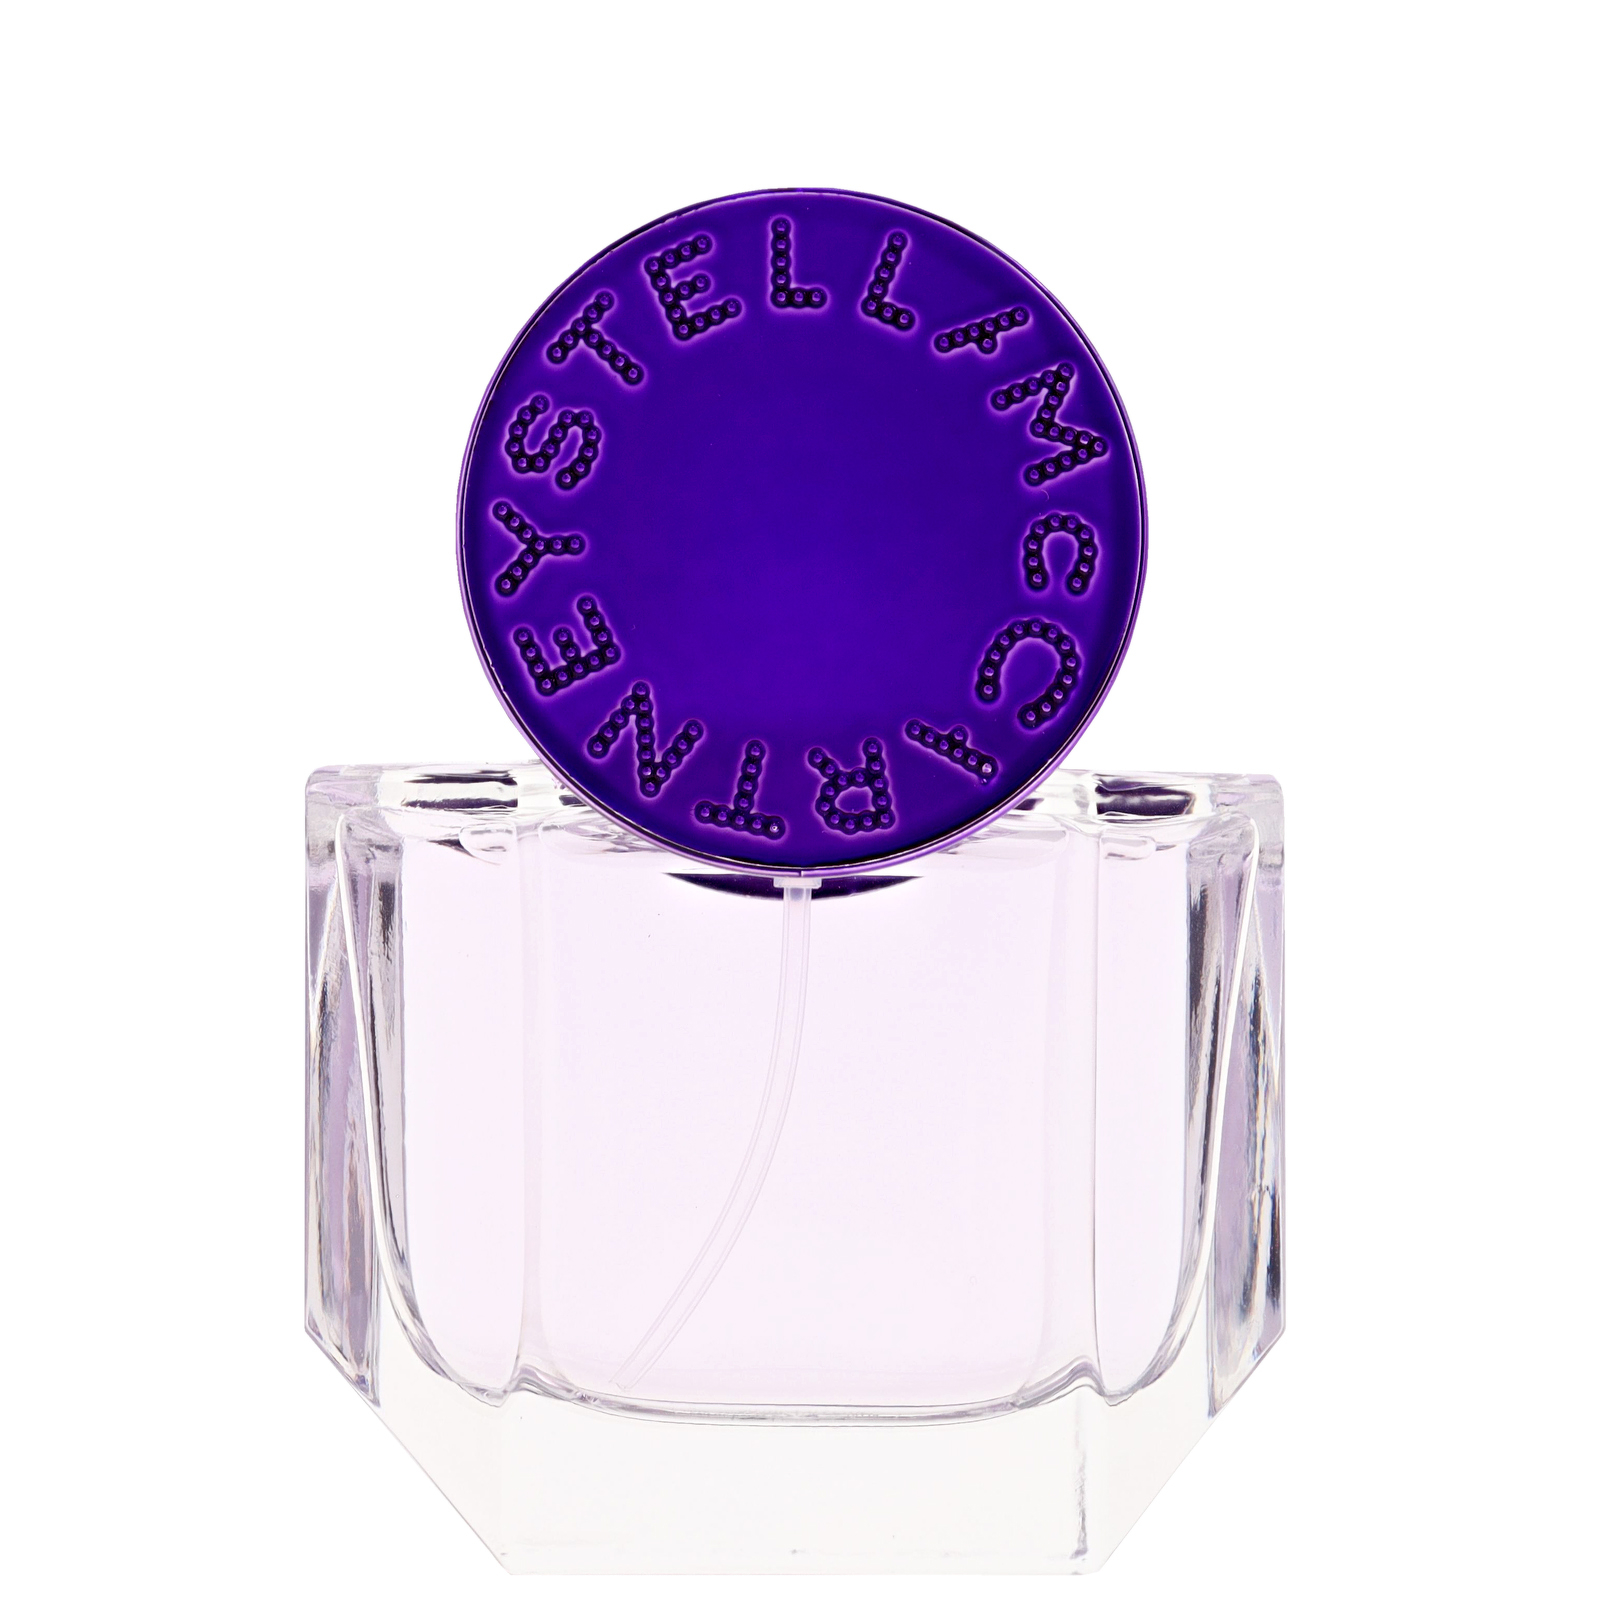 Stella McCartney Pop Bluebell Eau de Parfum Spray 30ml